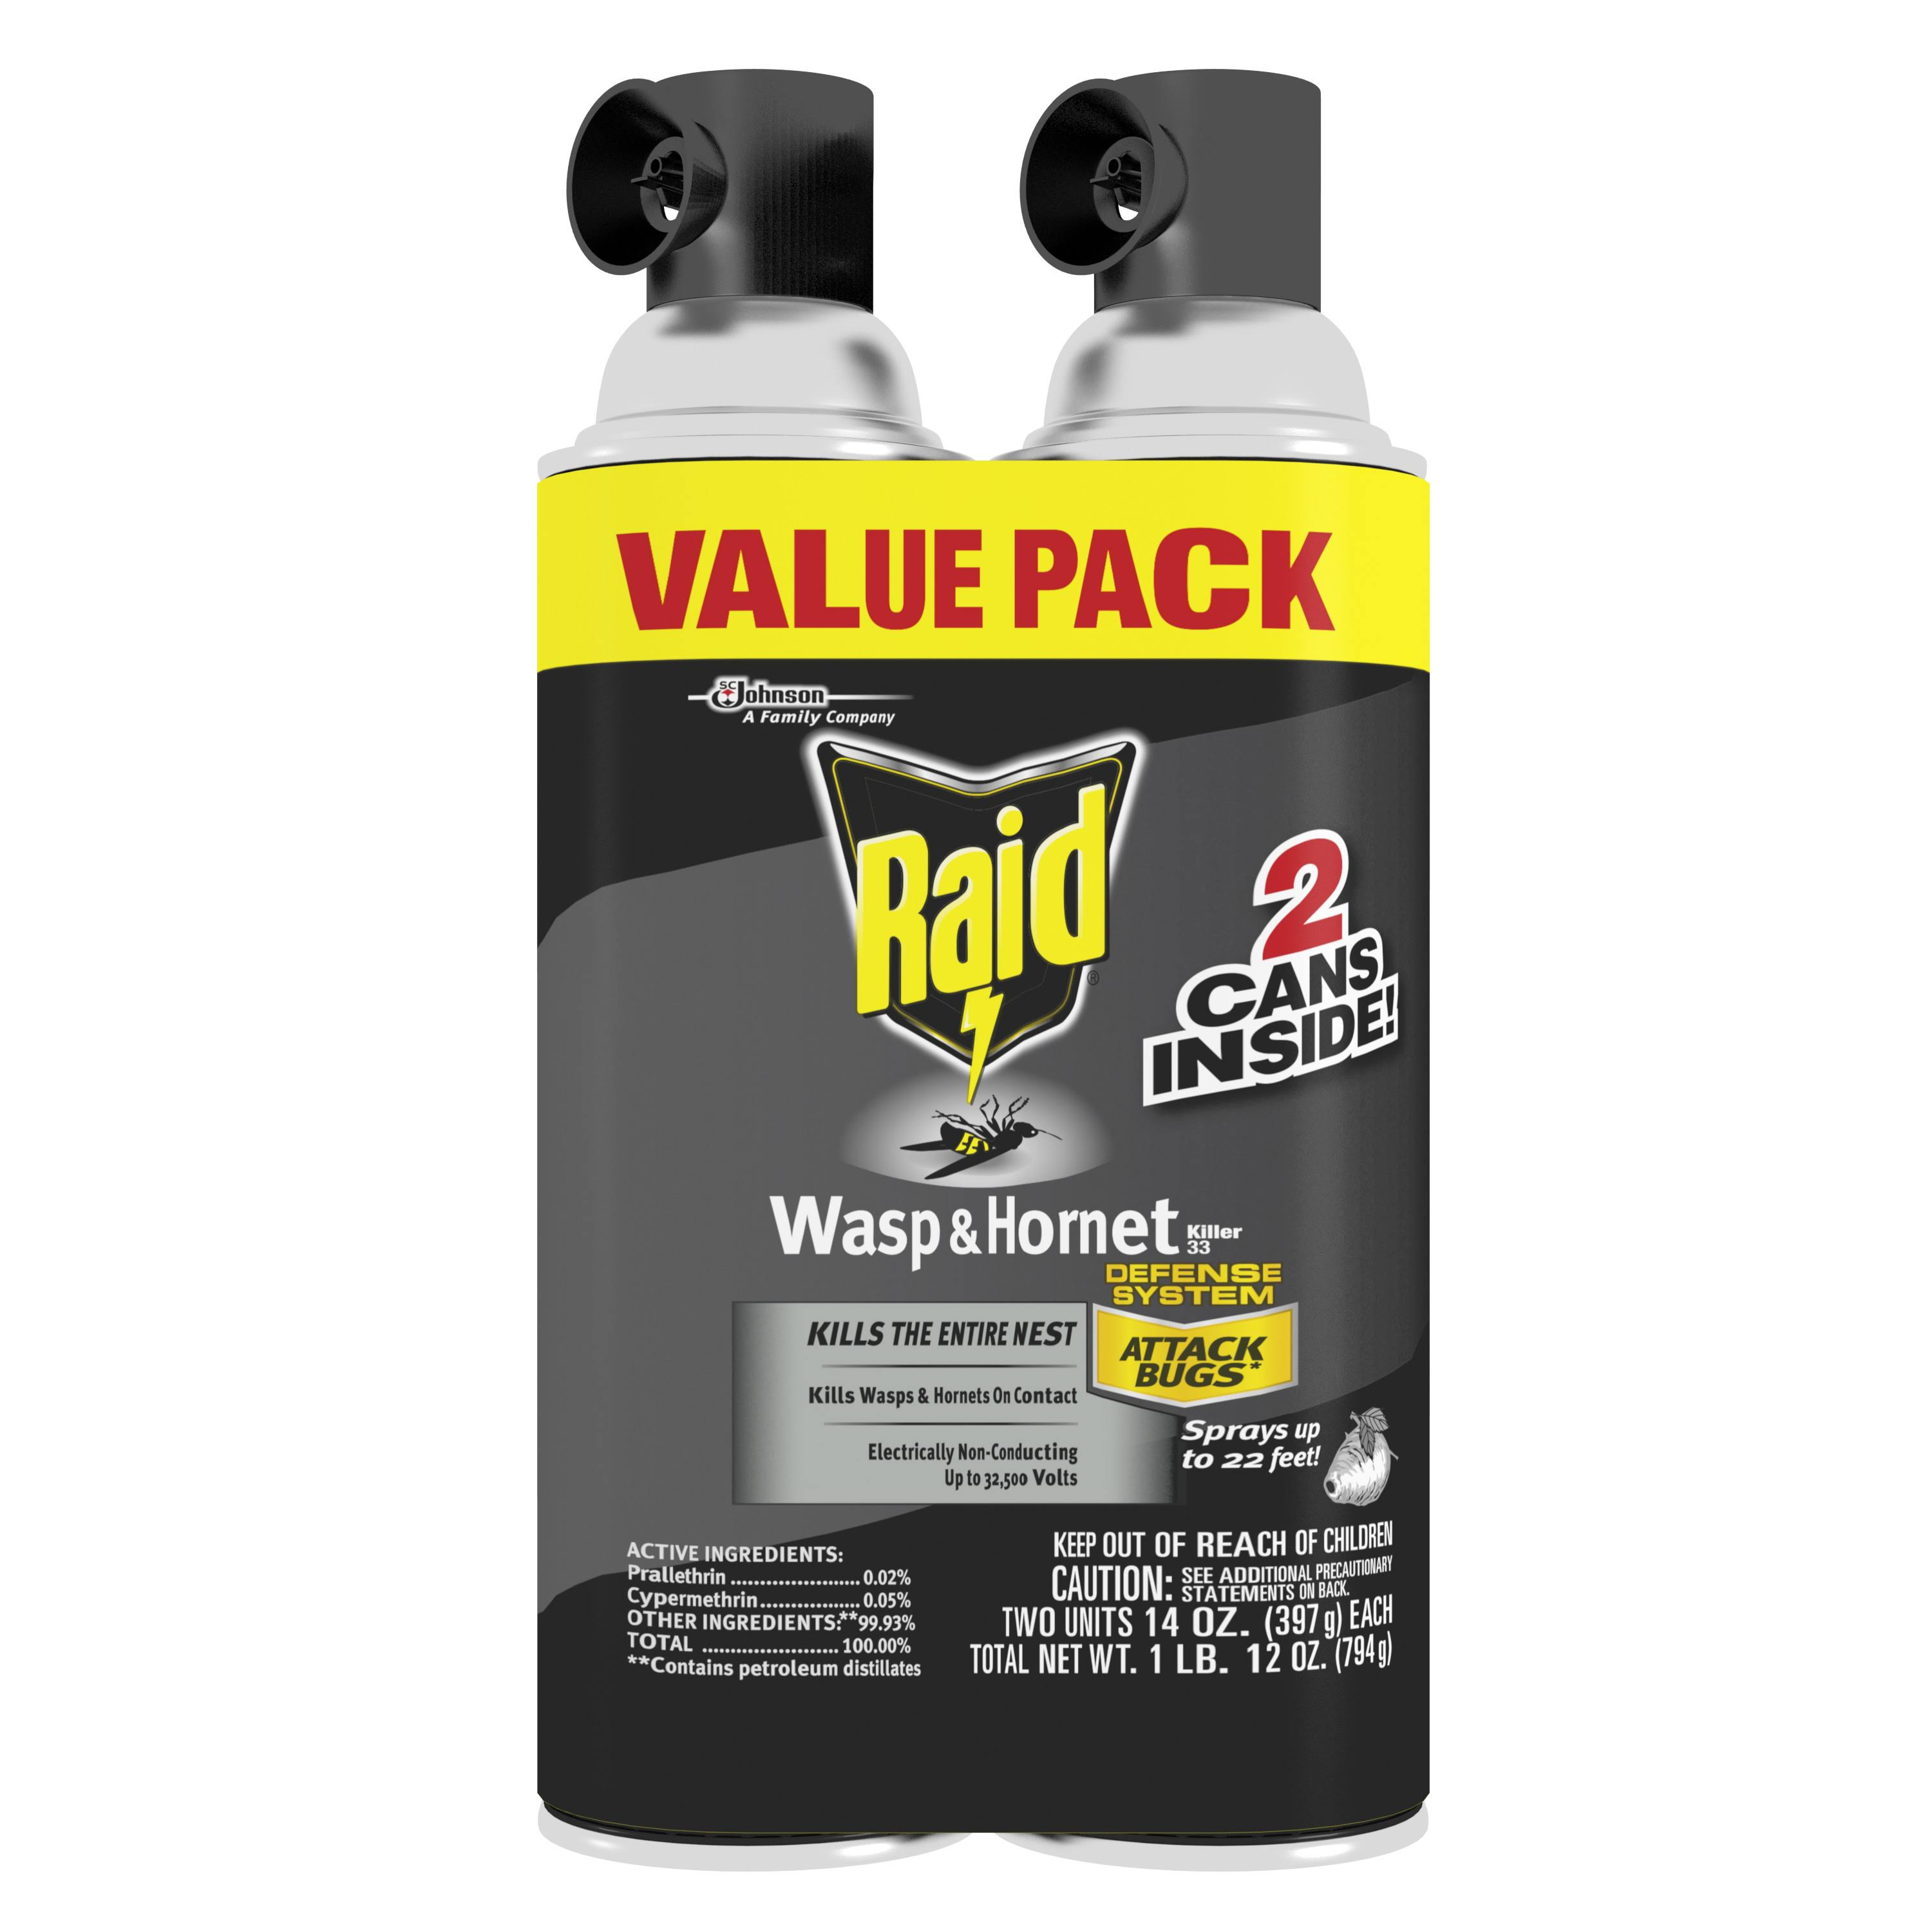 SC Johnson Raid Wasp & Hornet Killer - 14oz, 2pcs